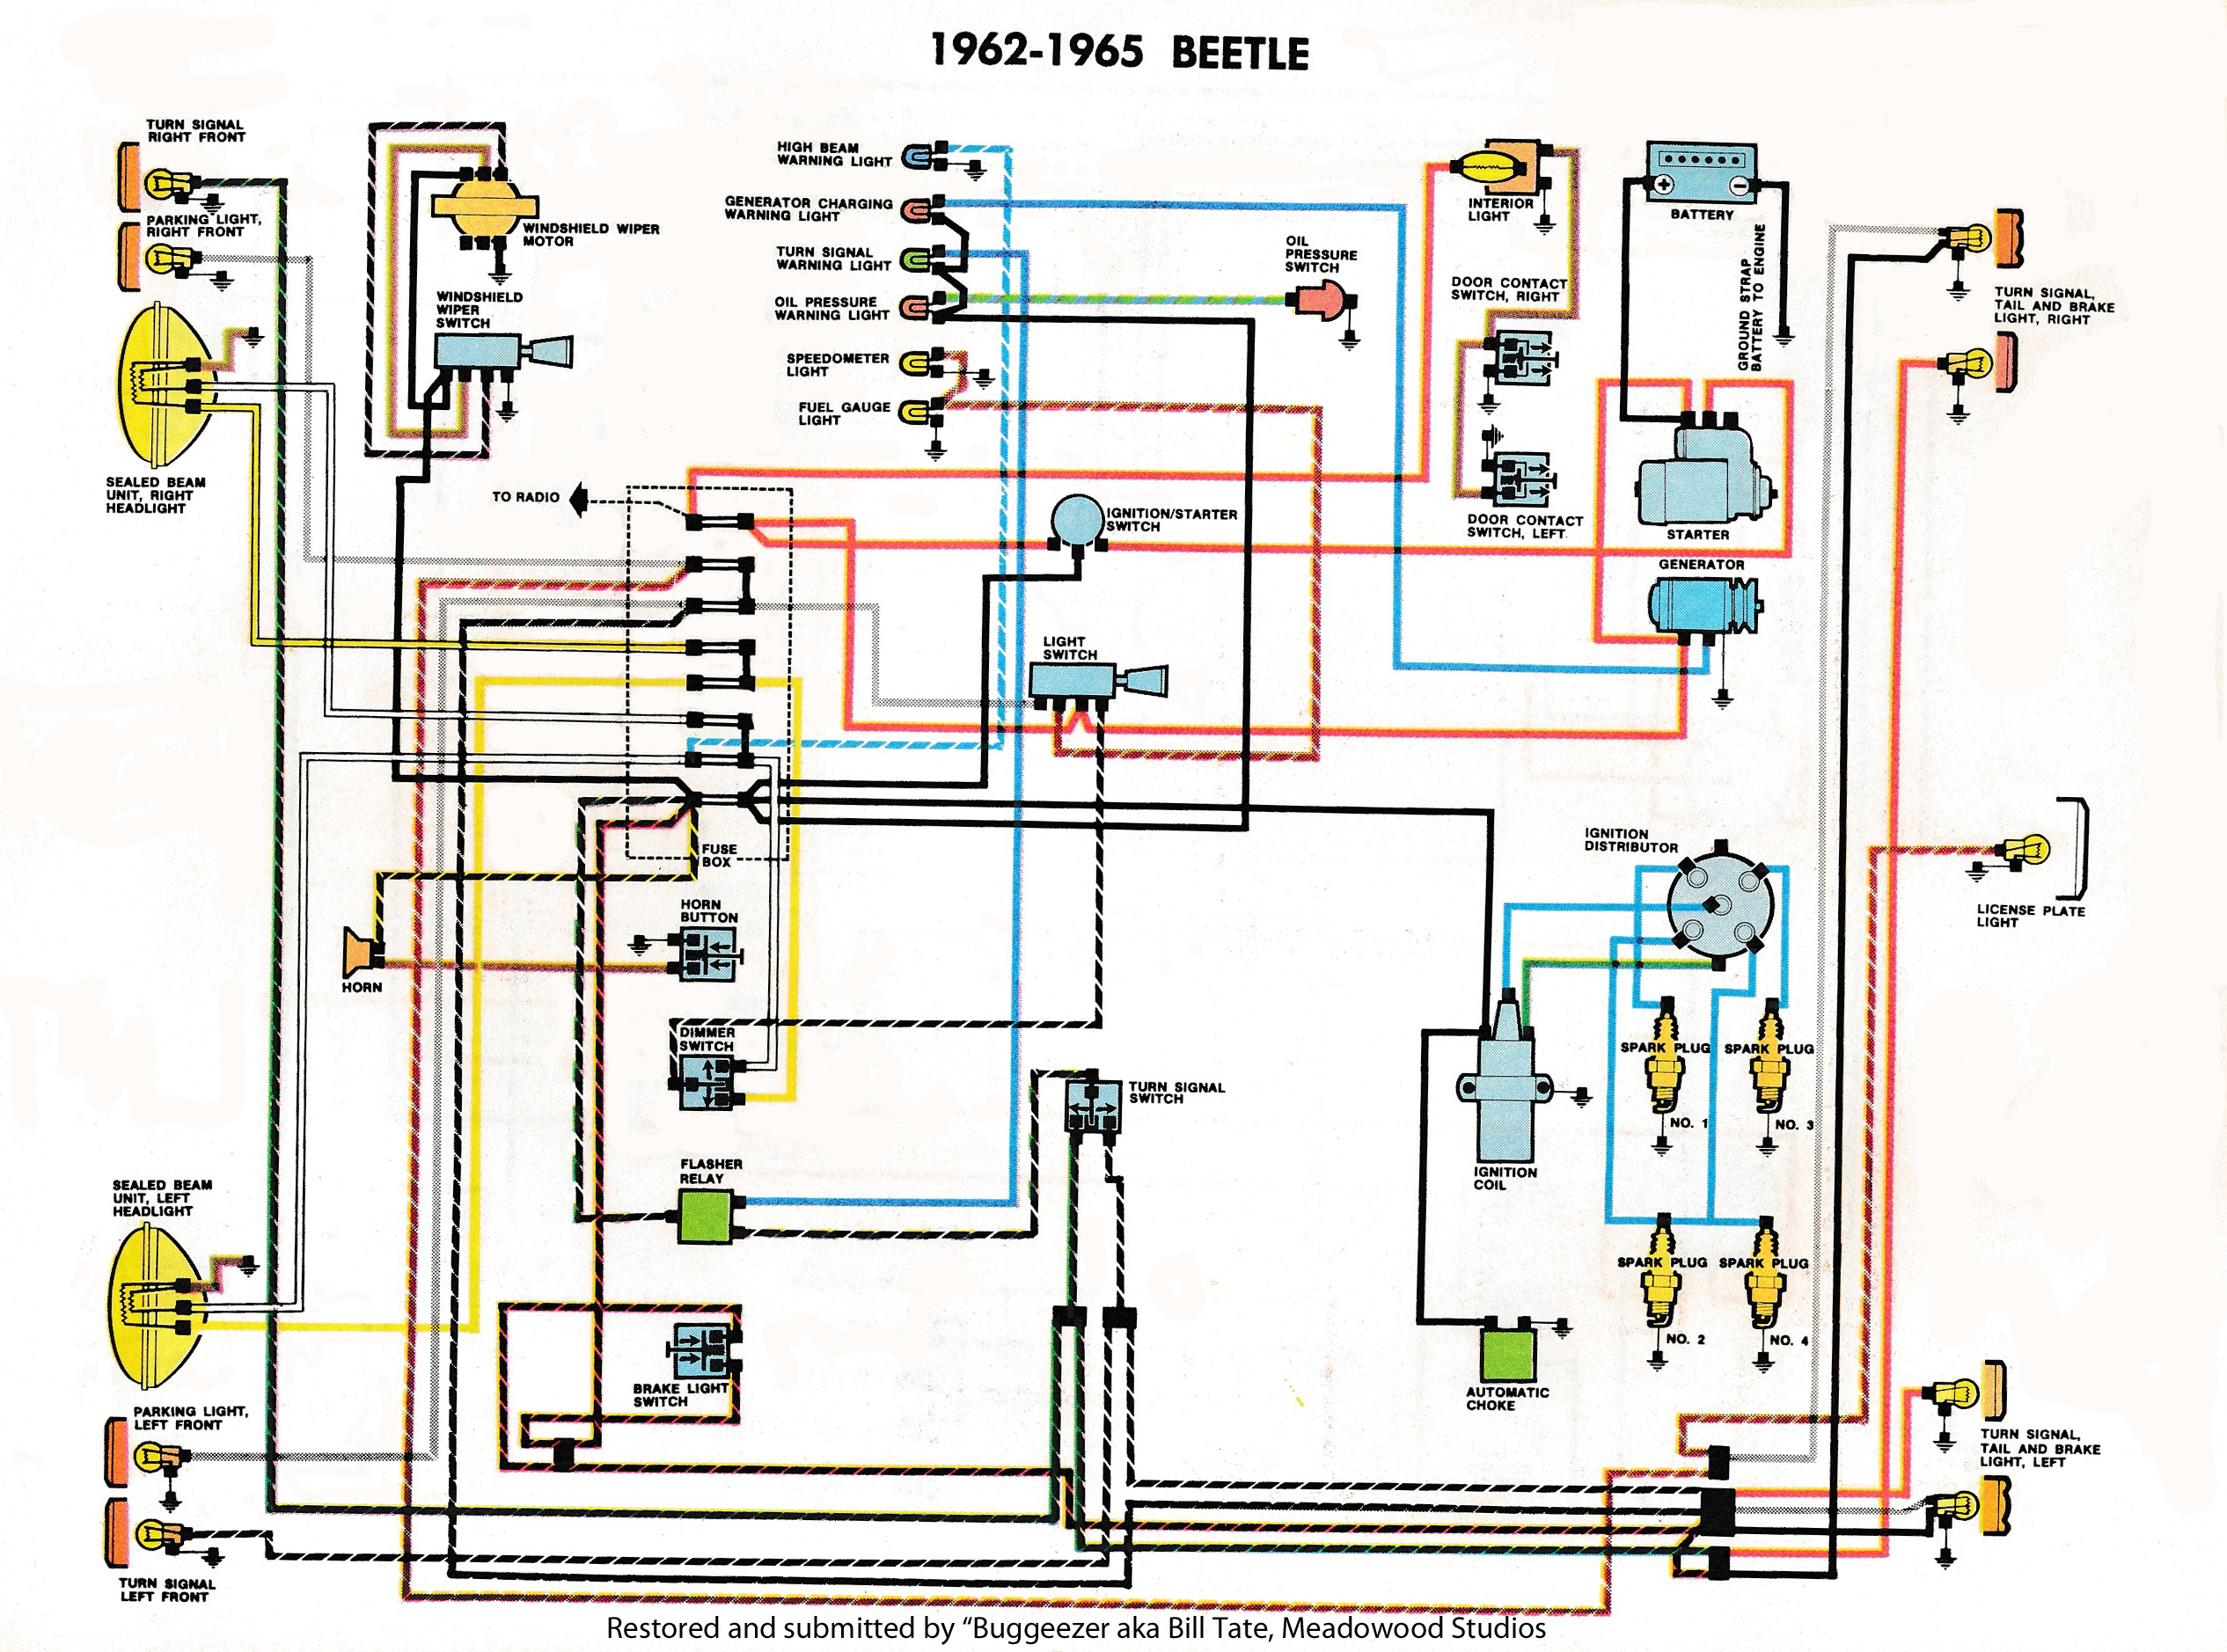 Vw Motor Wiring Archive Of Automotive Diagram Georgie Boy Fuel Filter Location Thesamba Com Type 1 Diagrams Rh Engine